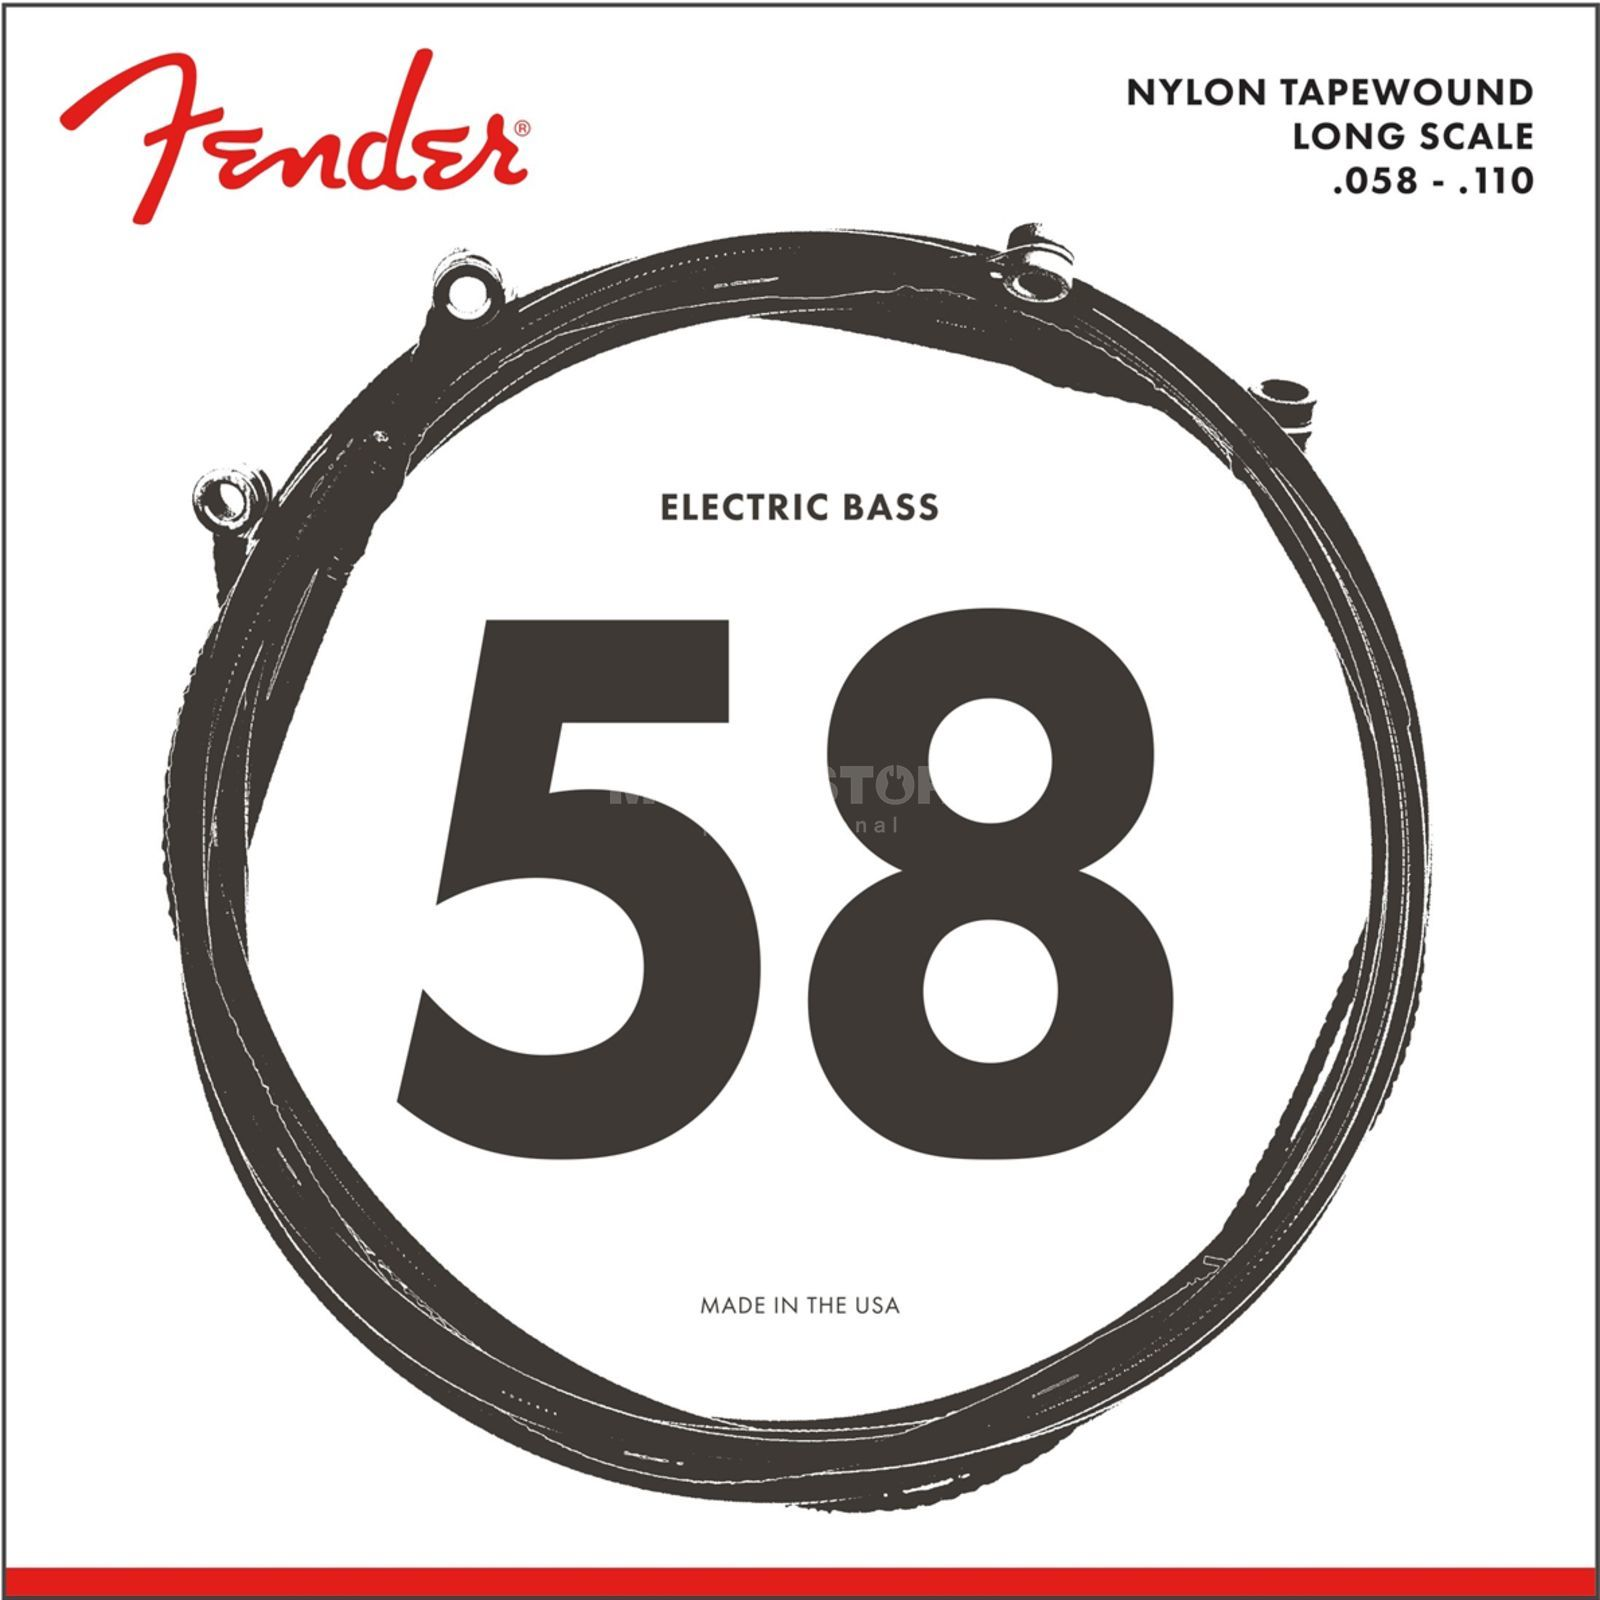 Fender 9120 Nylon Tapewound Bass Strings 58-110 Produktbild